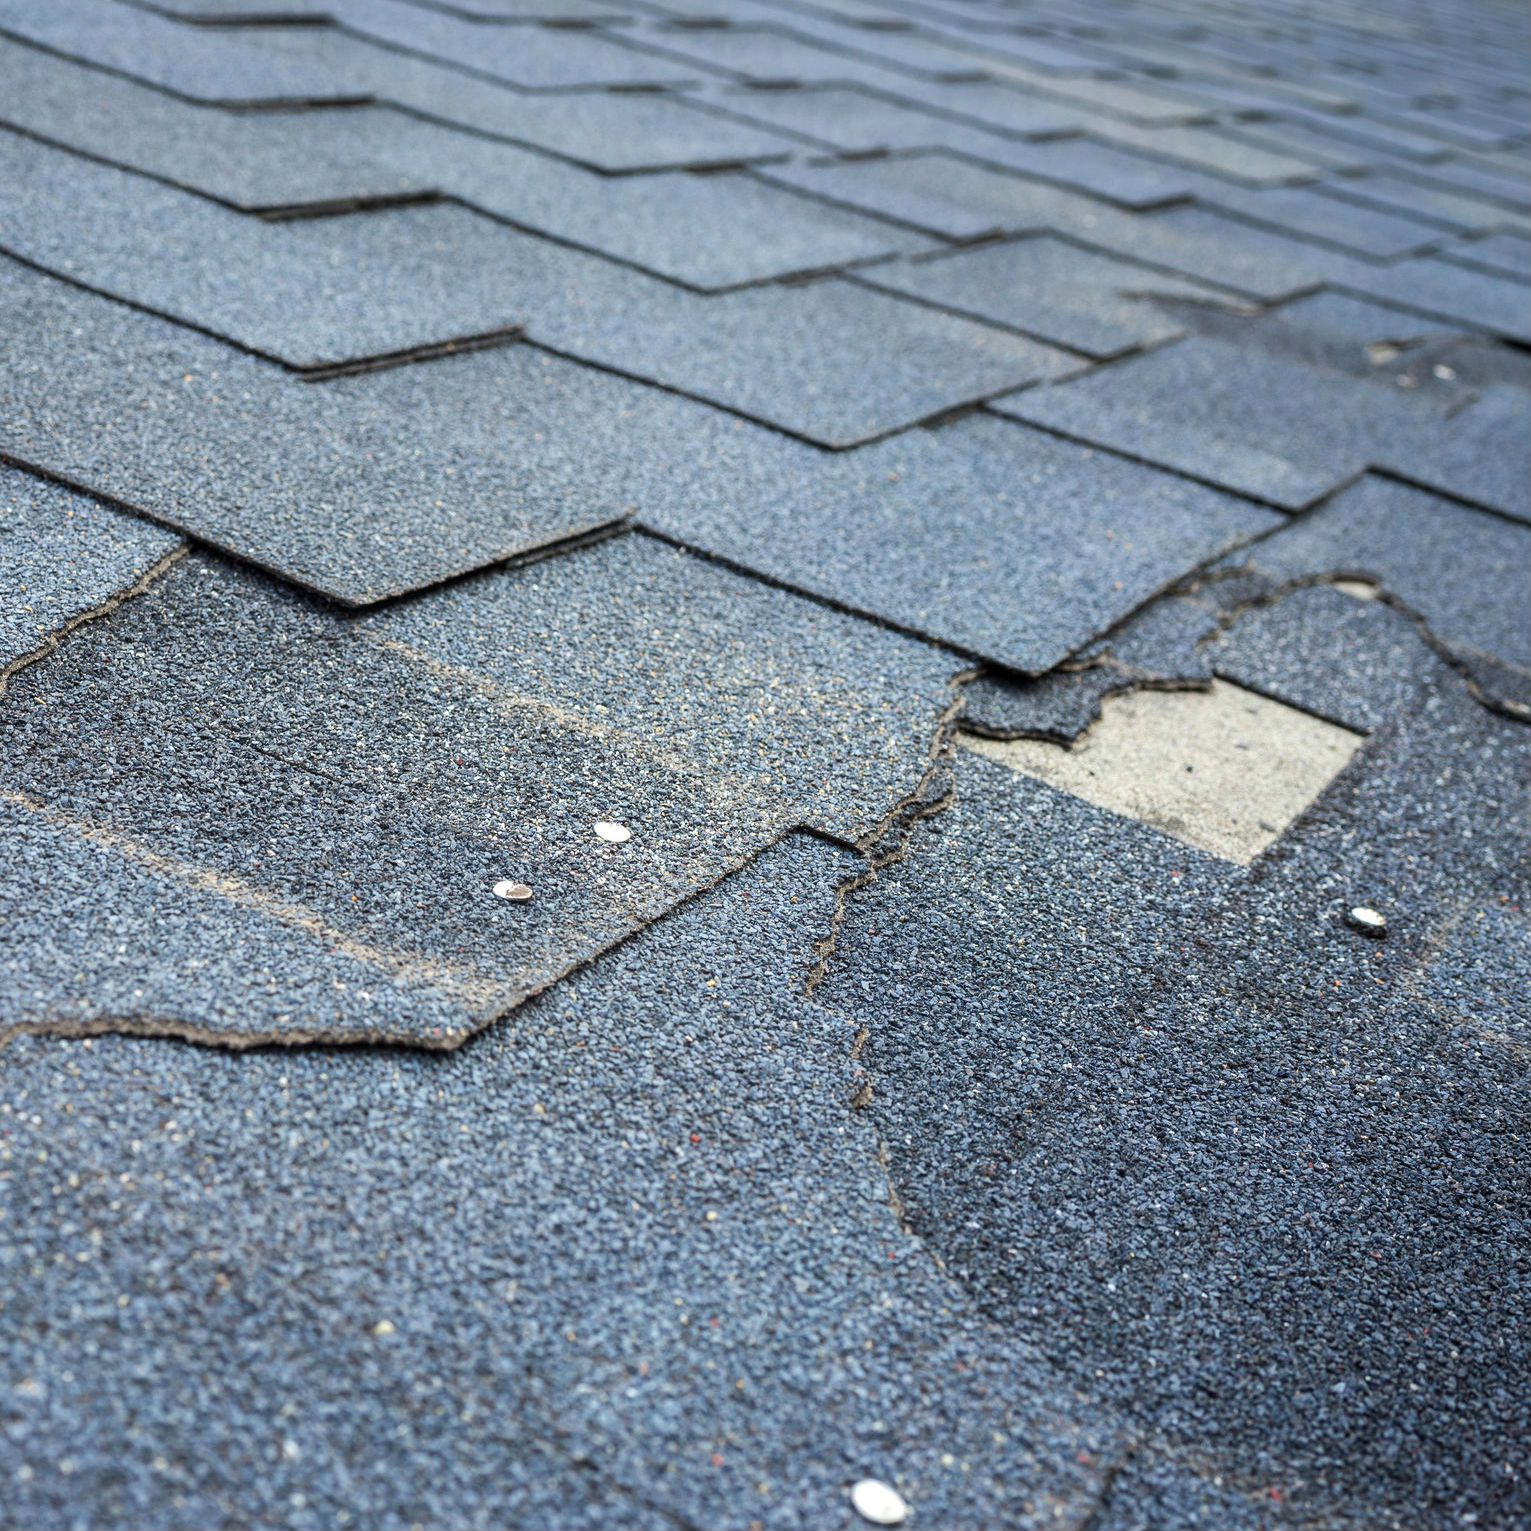 curling shingles on roofing